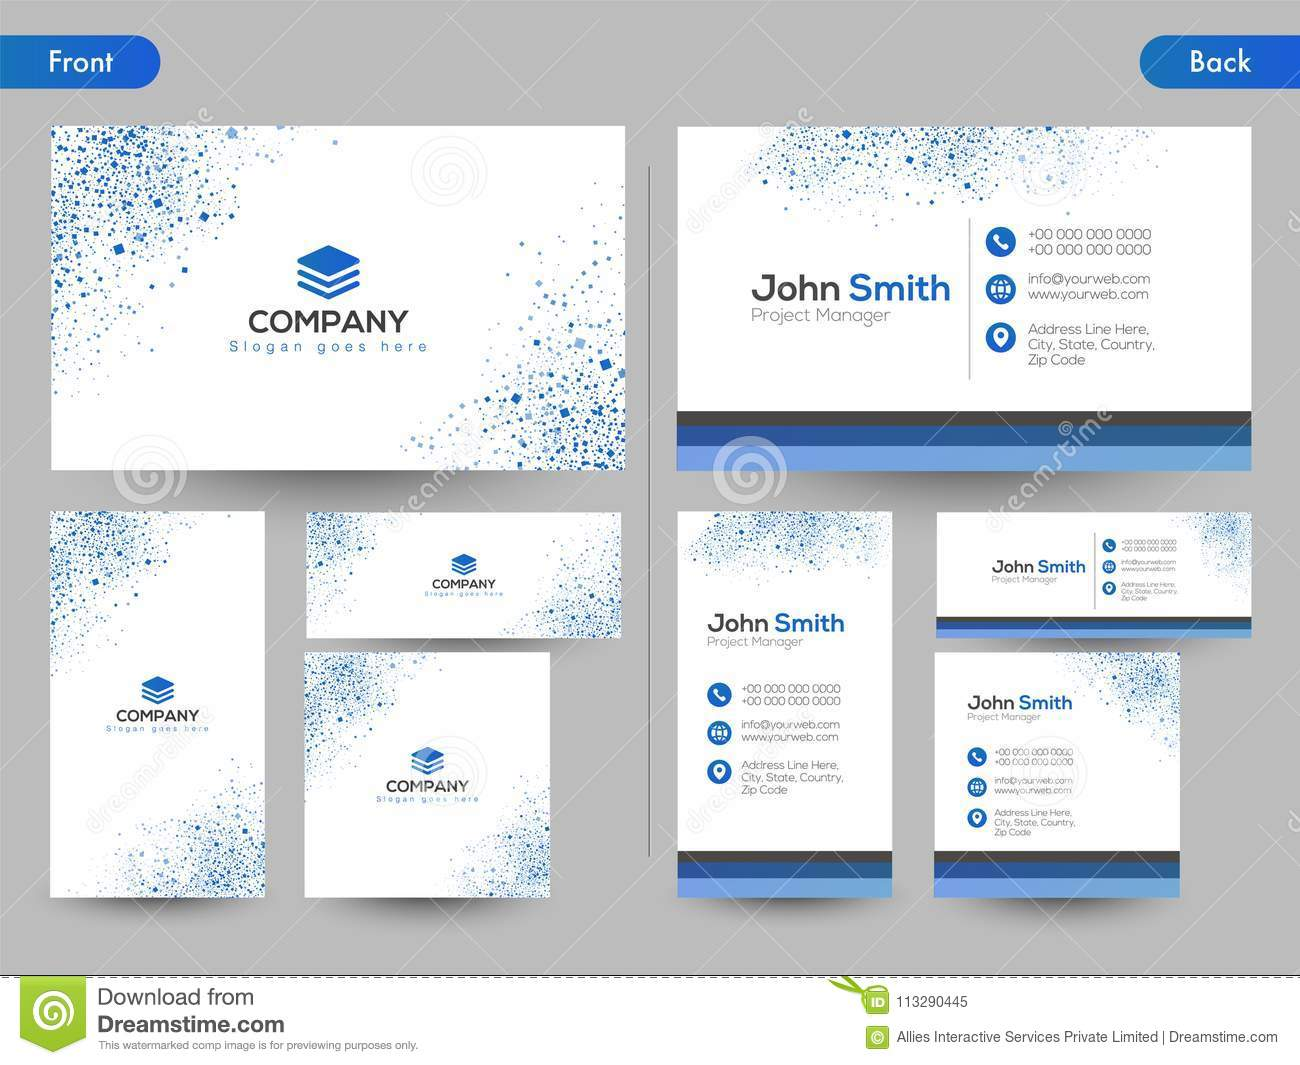 download horizontal business card with front and back presentation stock illustration illustration of identity